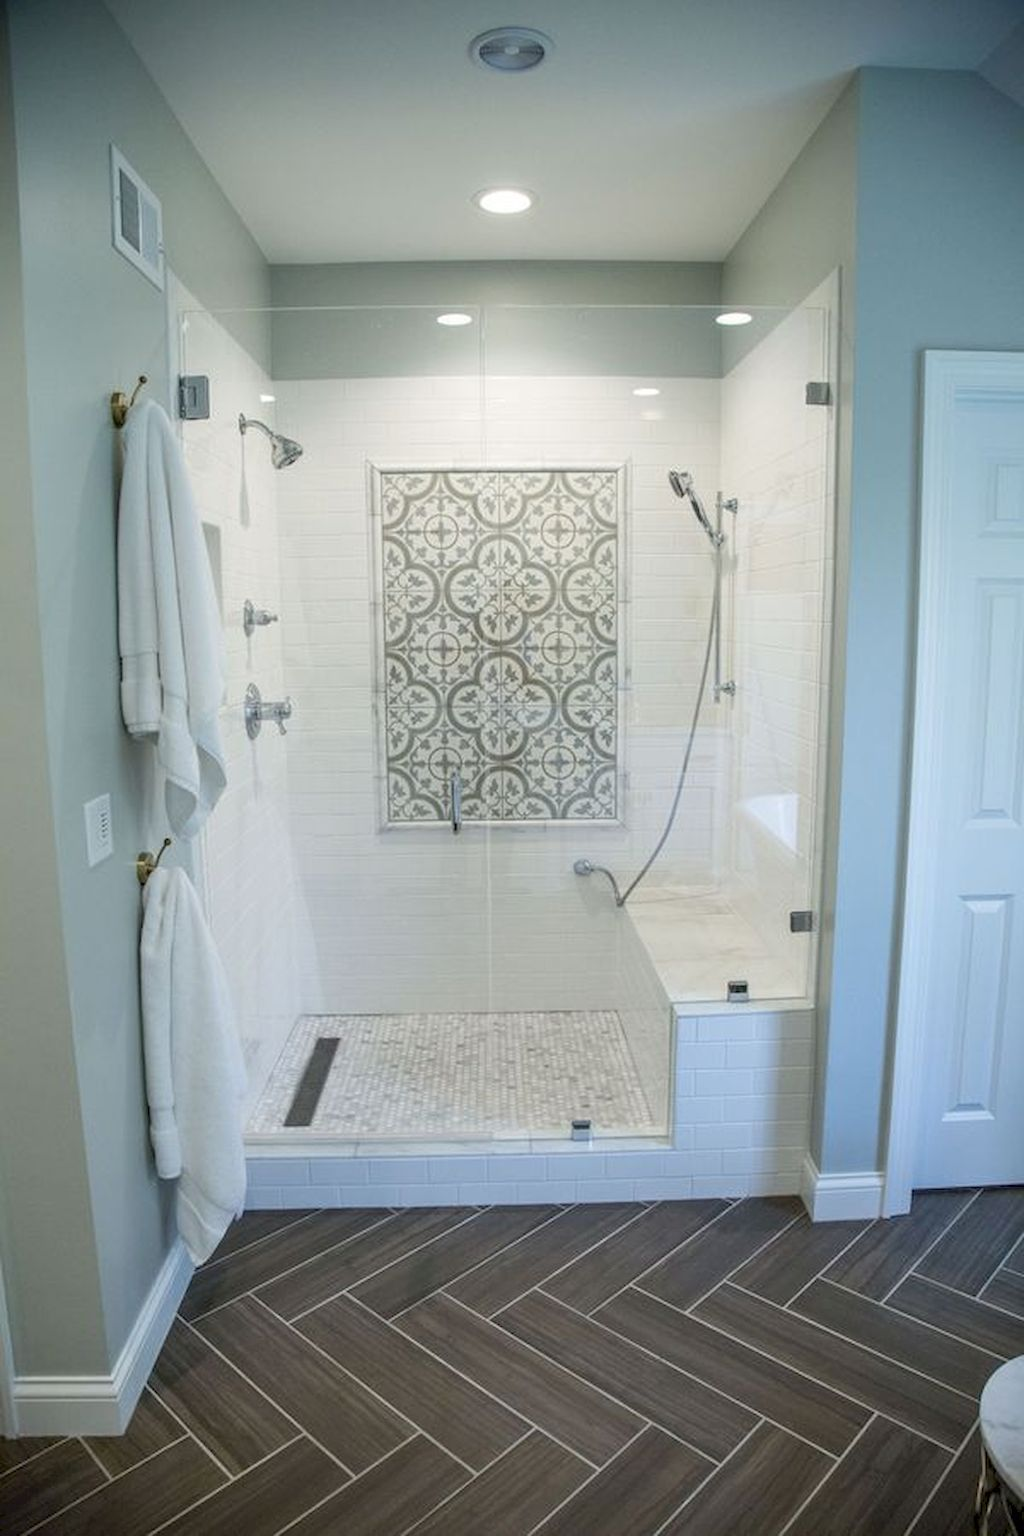 Tile Decor And More Cool 85 Beautiful Bathroom Shower Tile Decor Ideas Https